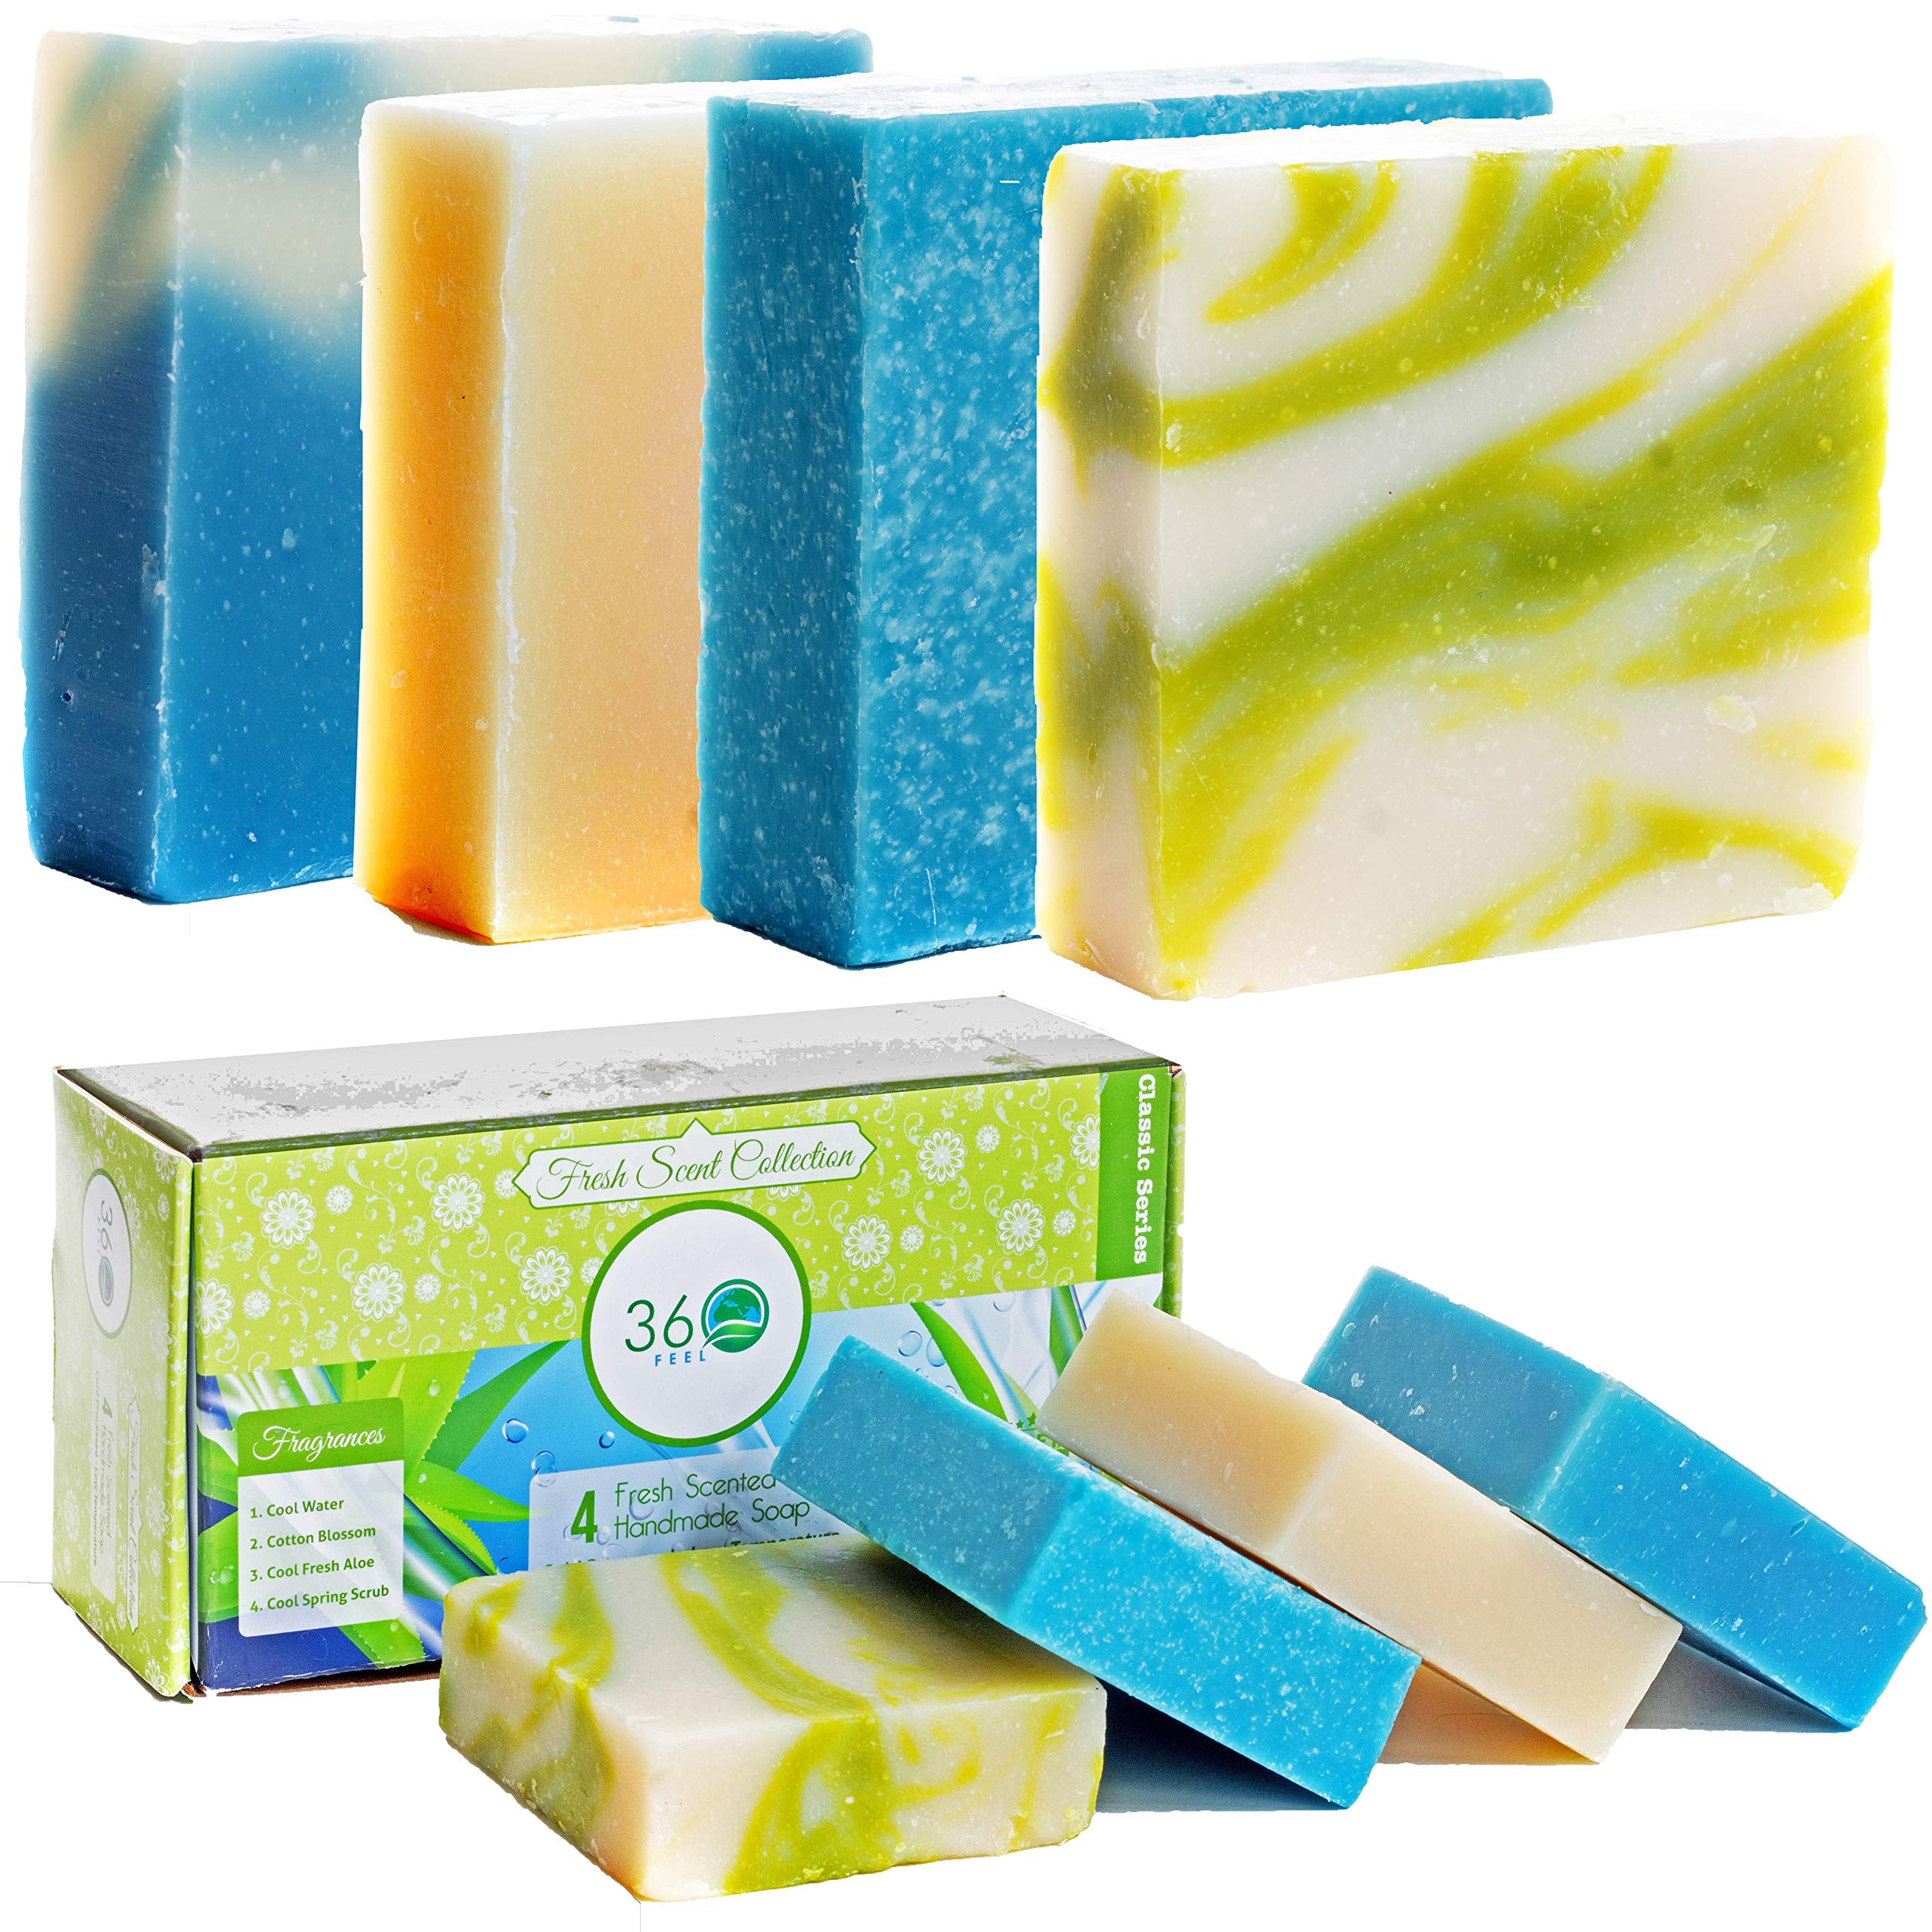 360Feel Scent Soap bars-4 Large- Aloe Vera, Cotton Blossom, Spring Scrub- Camping Anniversary Wedding Gift Set - Handmade Natural Organic Castile Soaps Essential Oil- Gift ready box fresh 20 Ounce